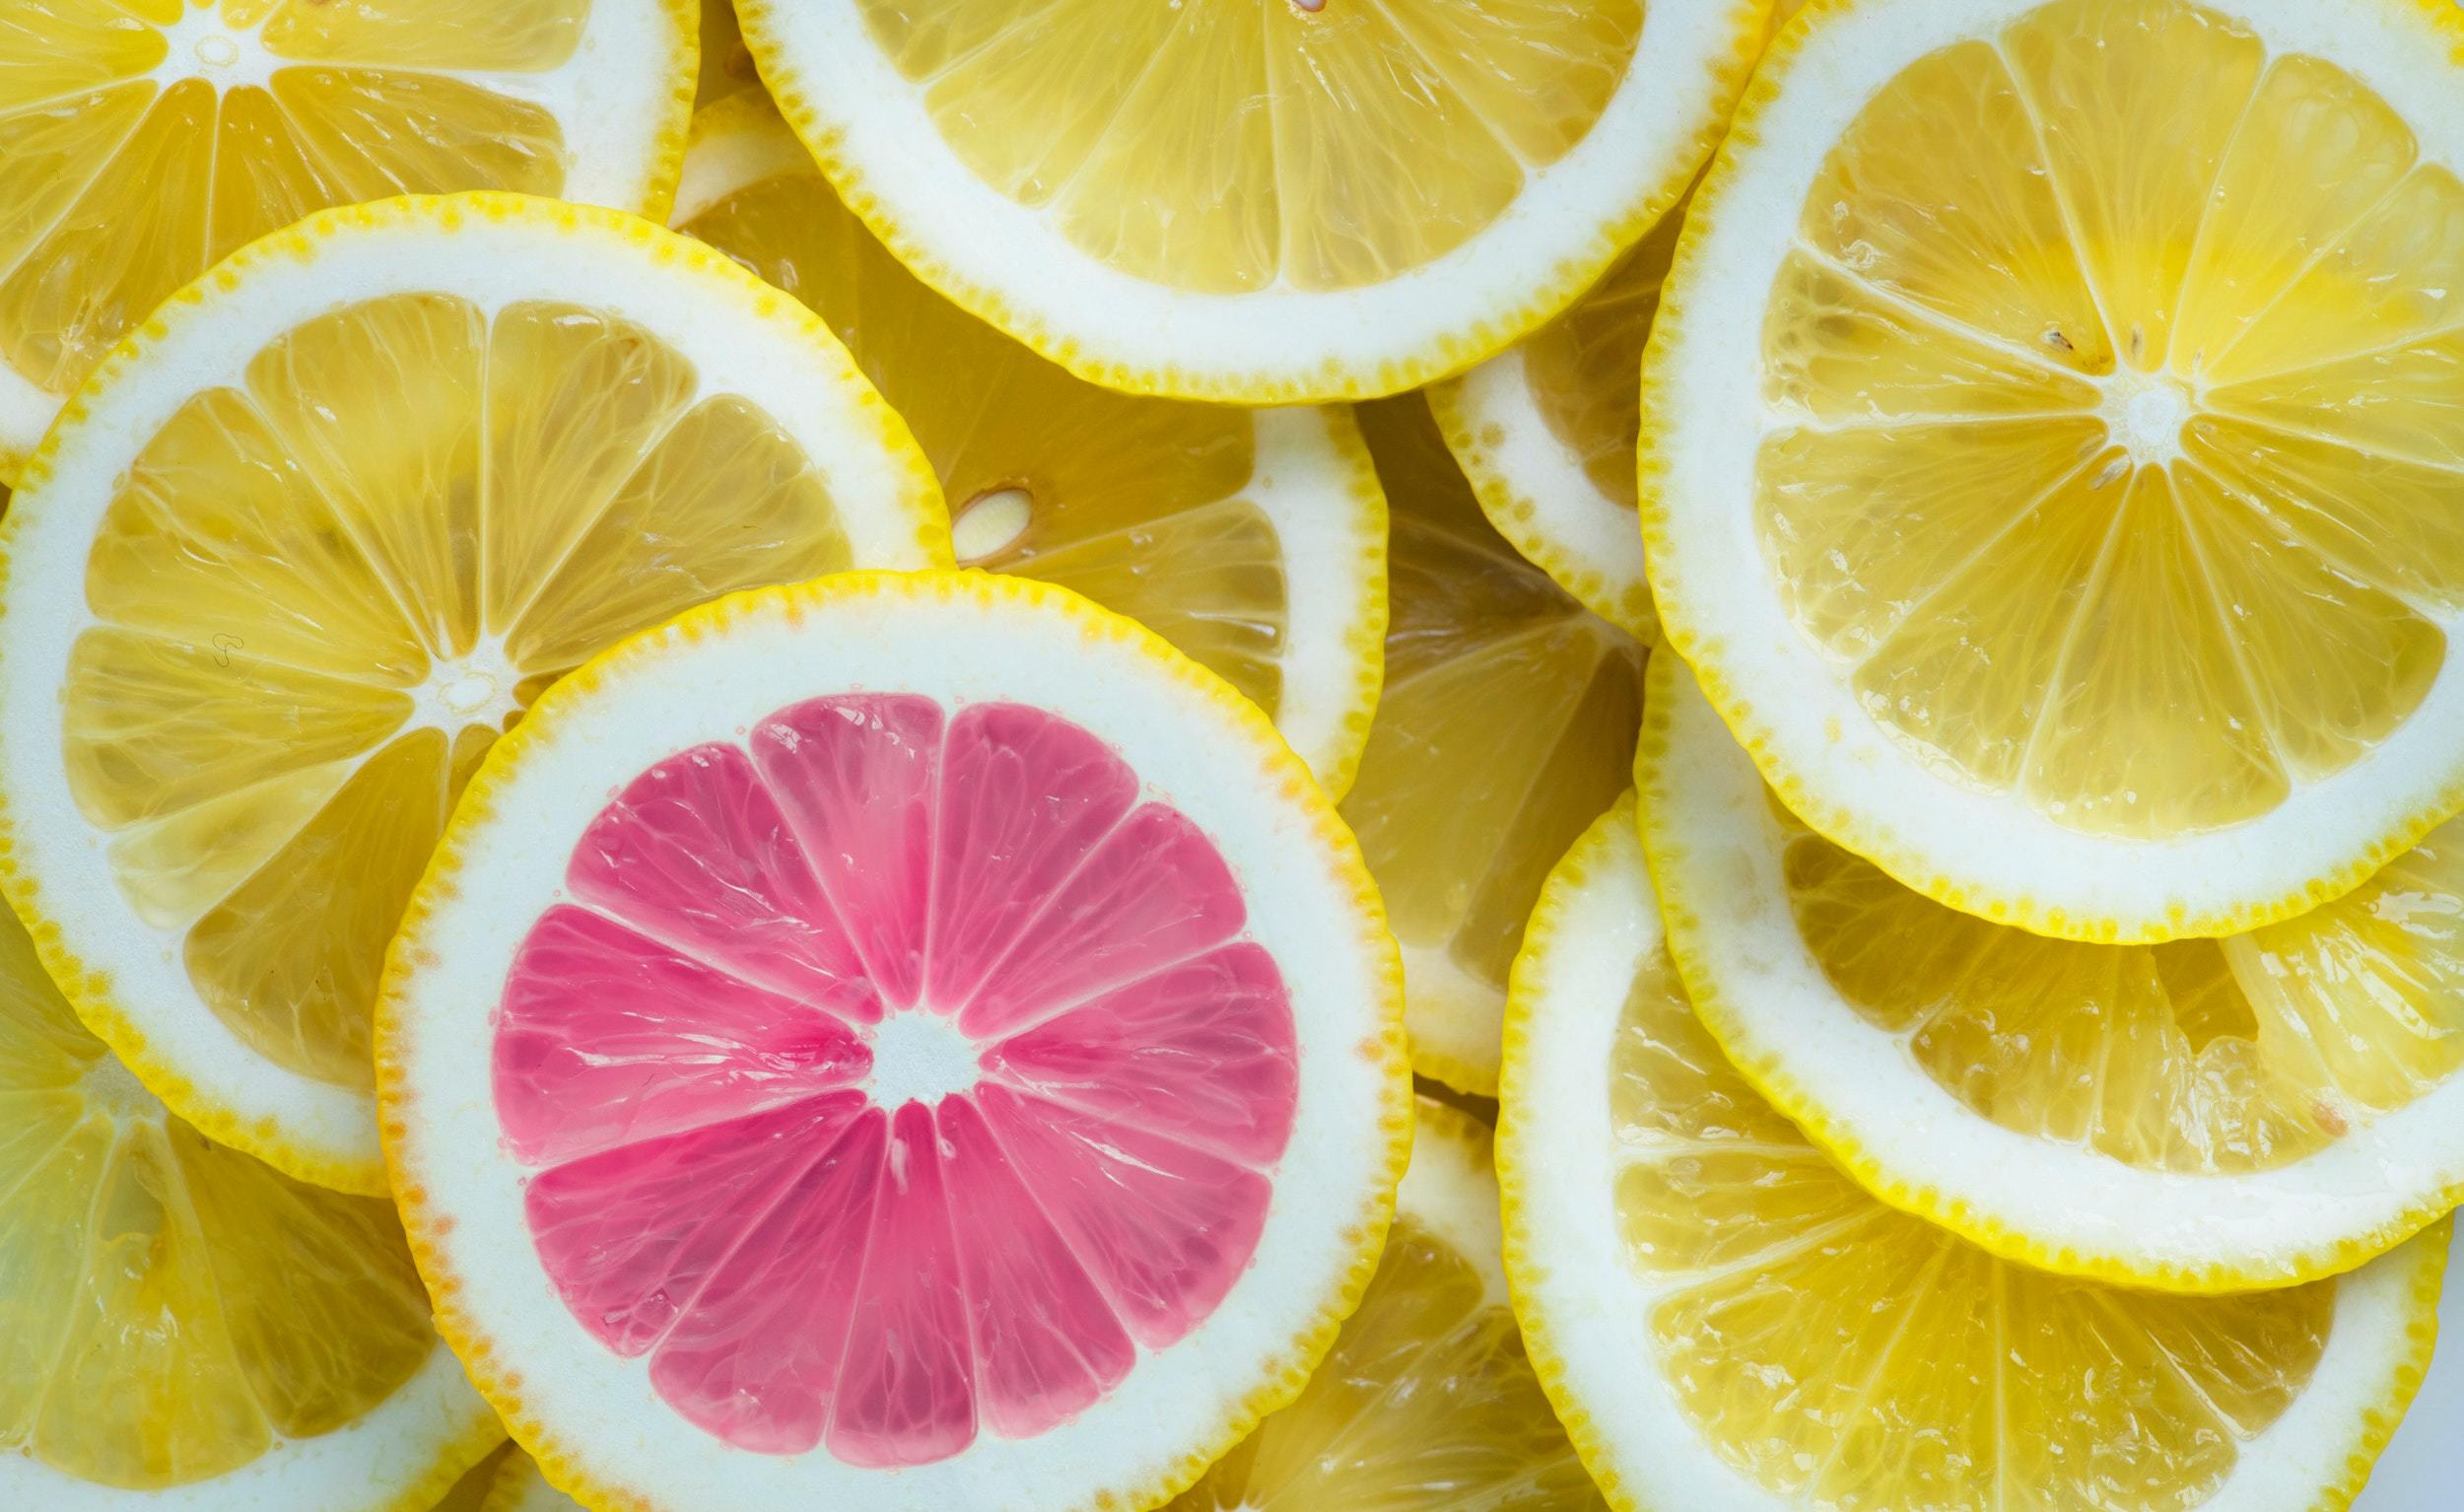 planning and thinking differently concept using lemons and a pink grapefruit